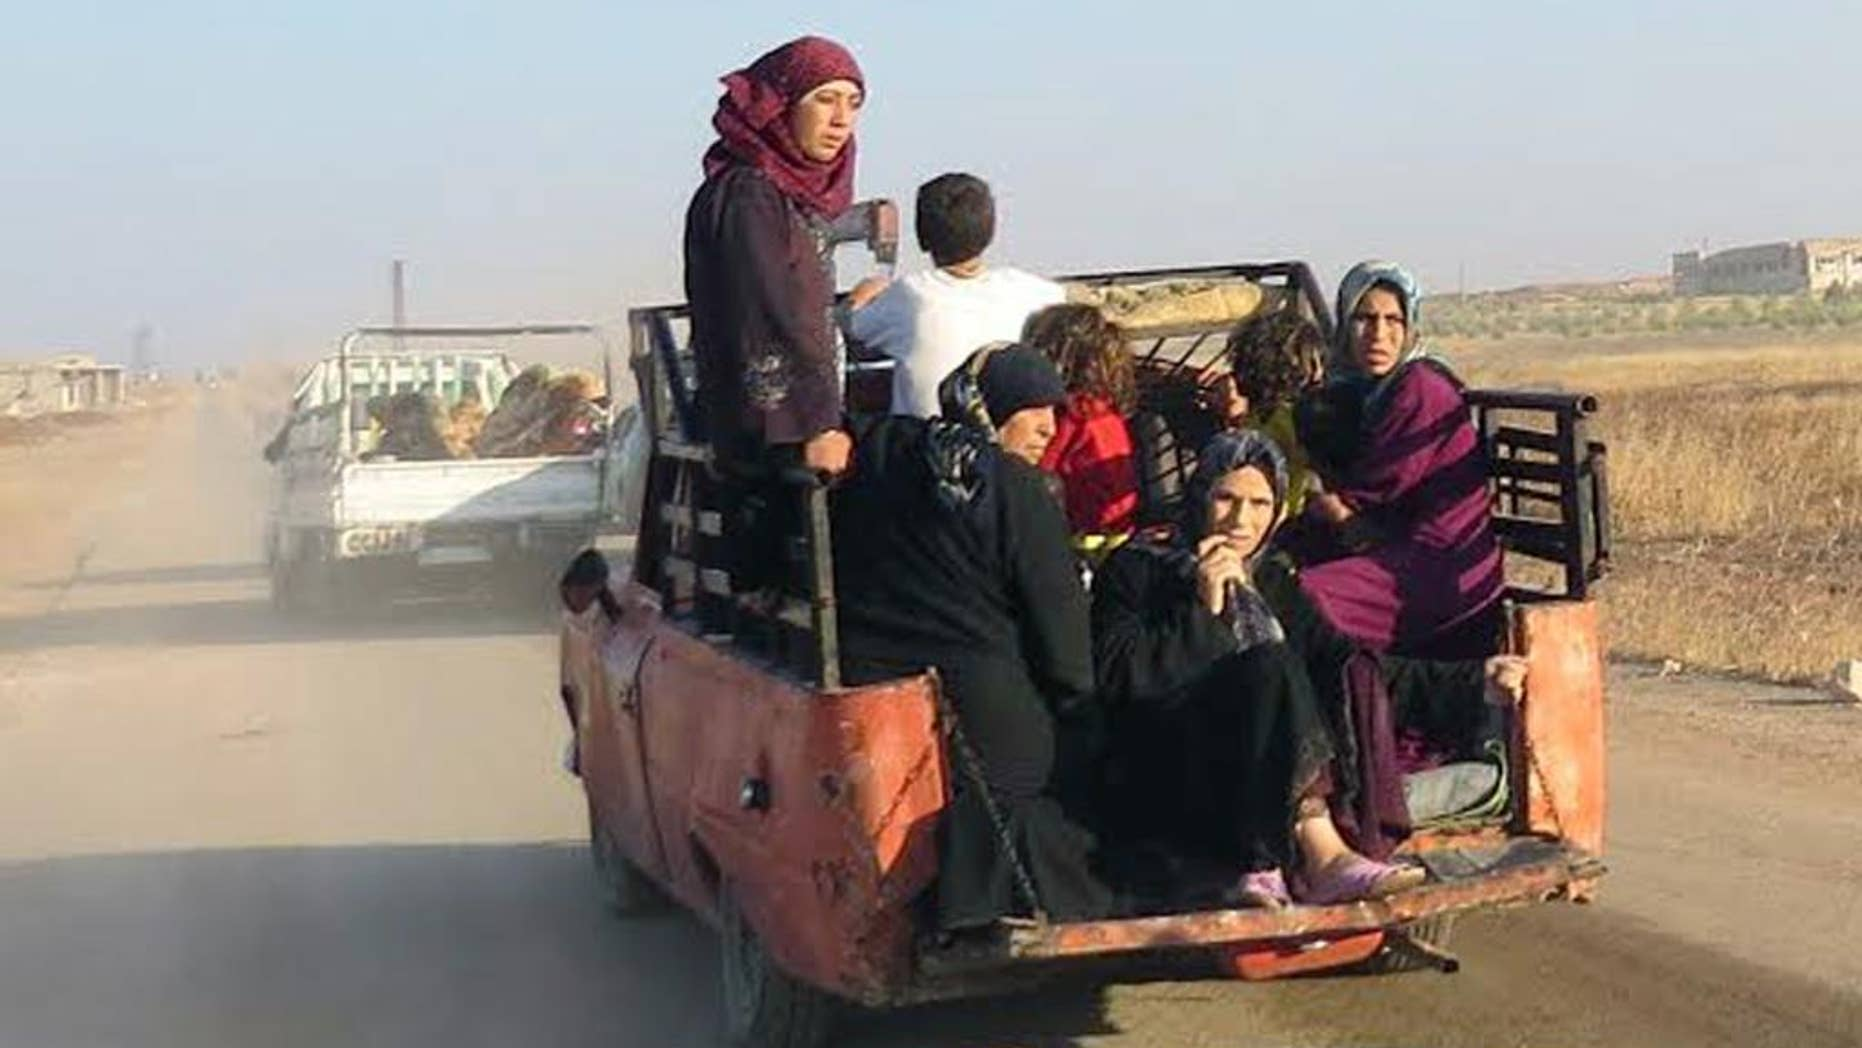 FILE -- This Thursday Sept. 1, 2016 file photo, provided by the Syria Press Center (SPC), an anti-government media group, shows civilians leaving the town of Suran, in Hama province, Syria. Five years of failed efforts to quell the fighting in Syria have persuaded many observers that the war, inconclusive and catastrophic on a historic scale, may be unresolvable. But a closer look at the landscape allows a glimmer of hope that a turning point may have been reached with the truce that took effect Monday, Sept. 12, 2016. (Syria Press Center via AP, File)